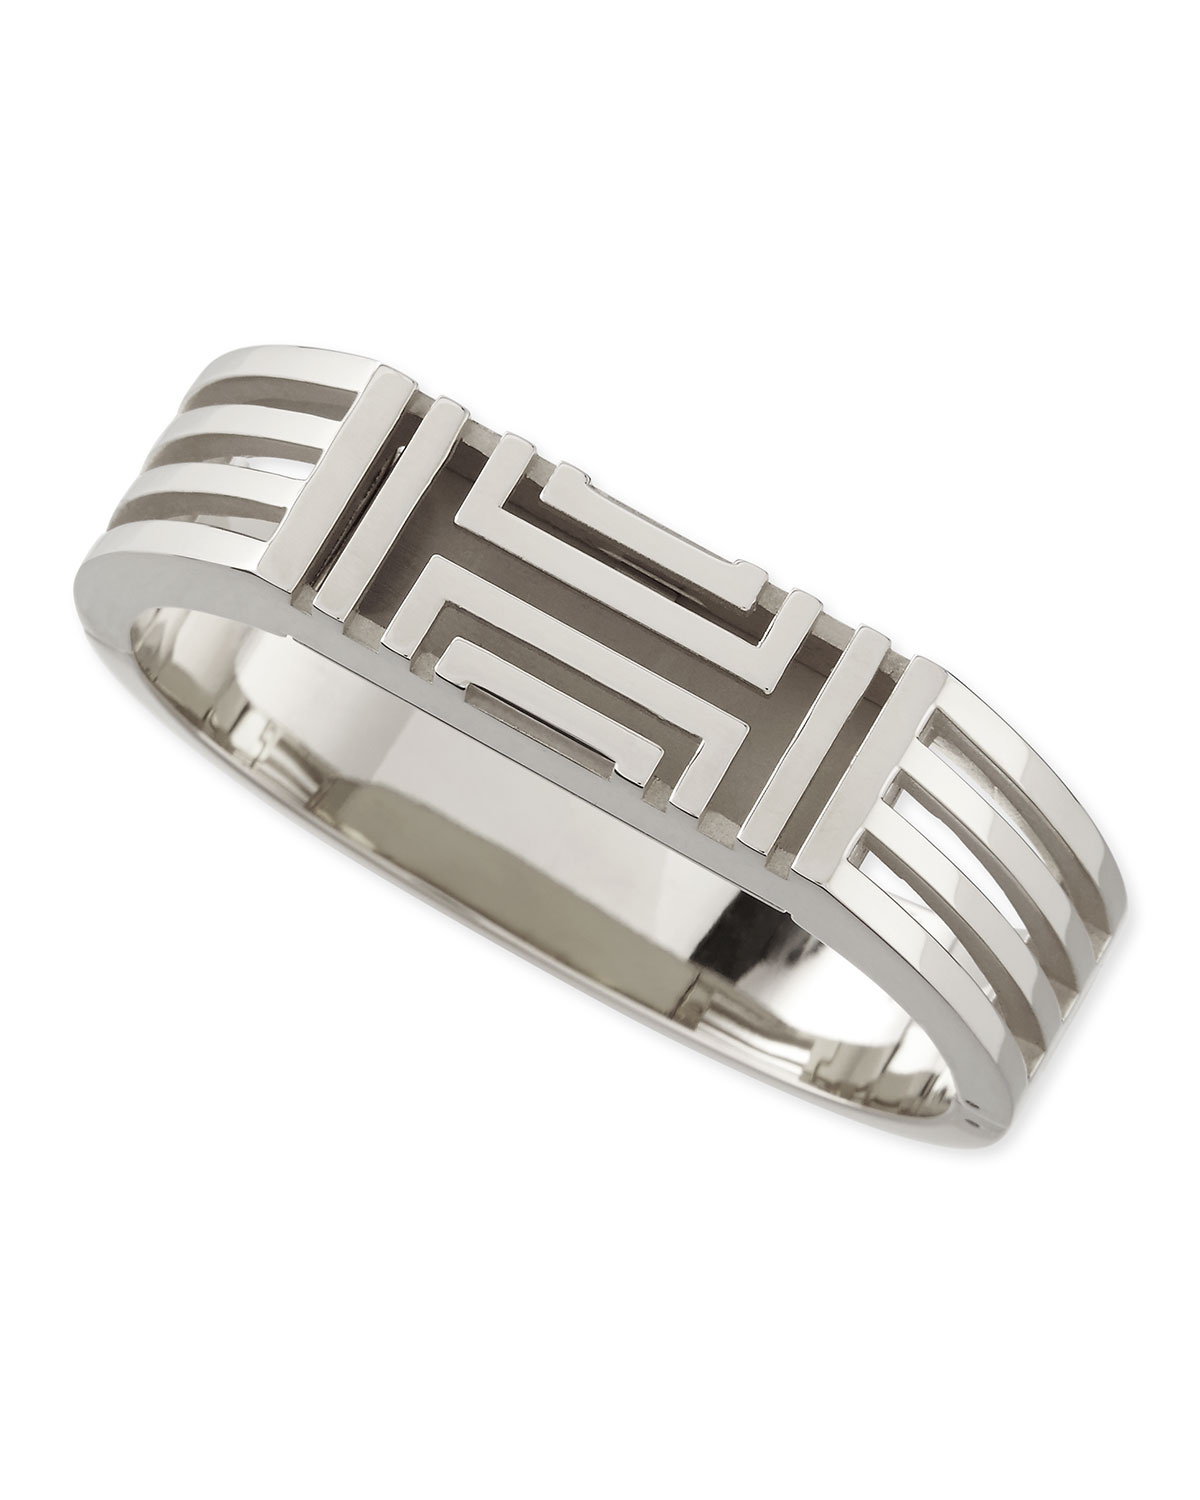 Rhodium-Plated Fitbit-Case Bracelet, Silver - Tory Burch